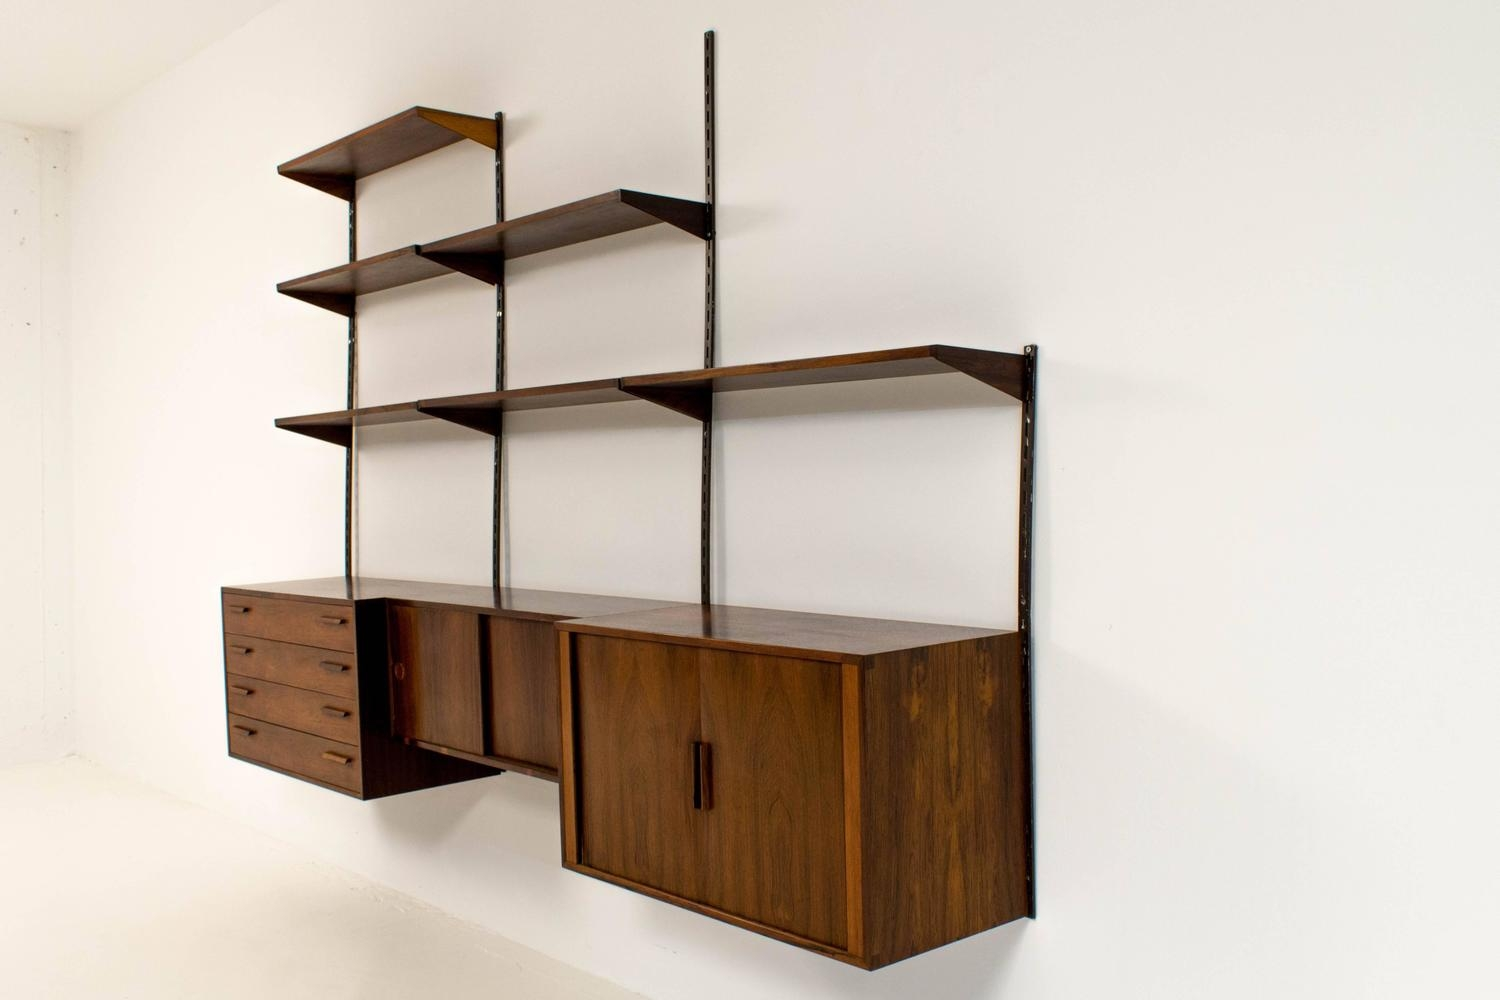 wall shelving units 15 best of wall shelving units 28105